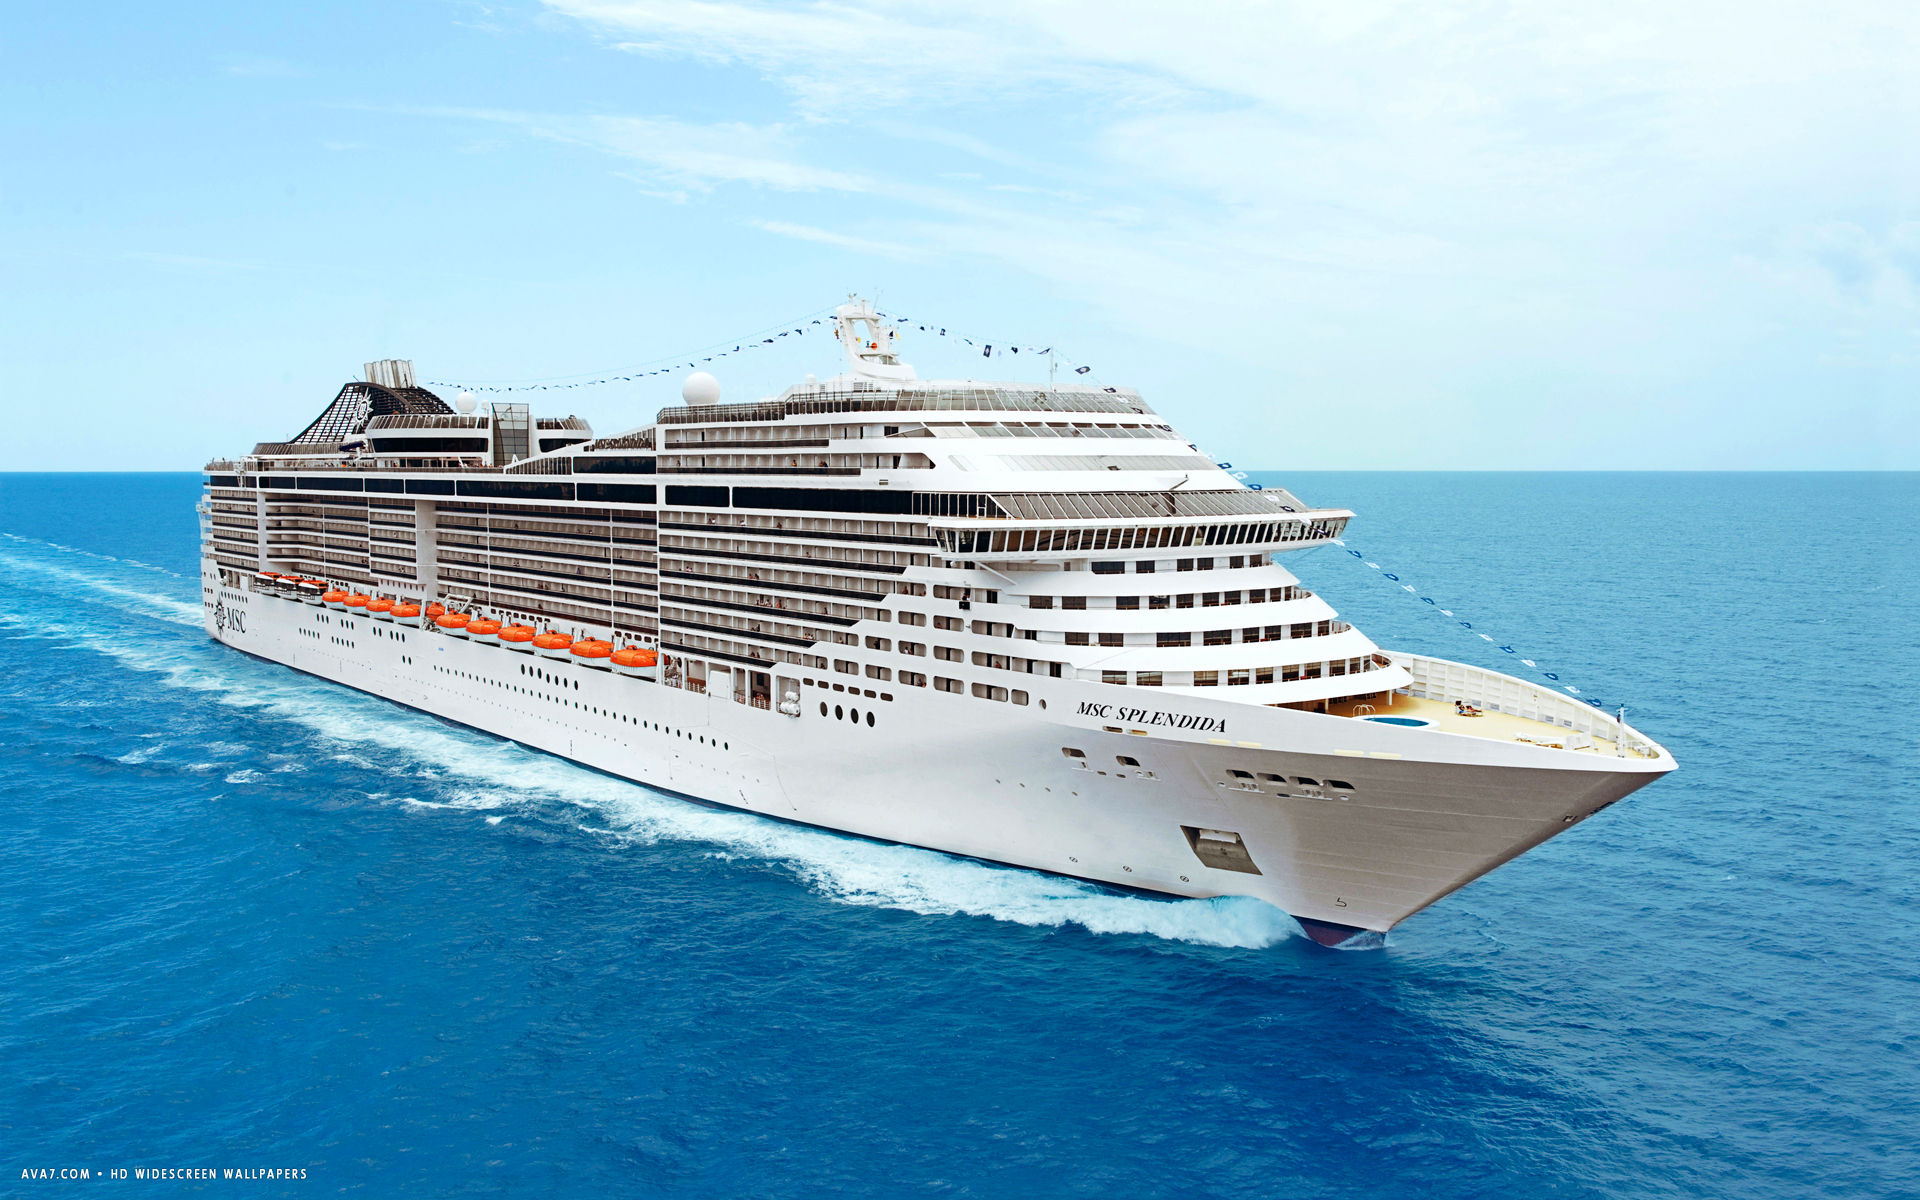 msc splendida cruise ship hd widescreen wallpaper